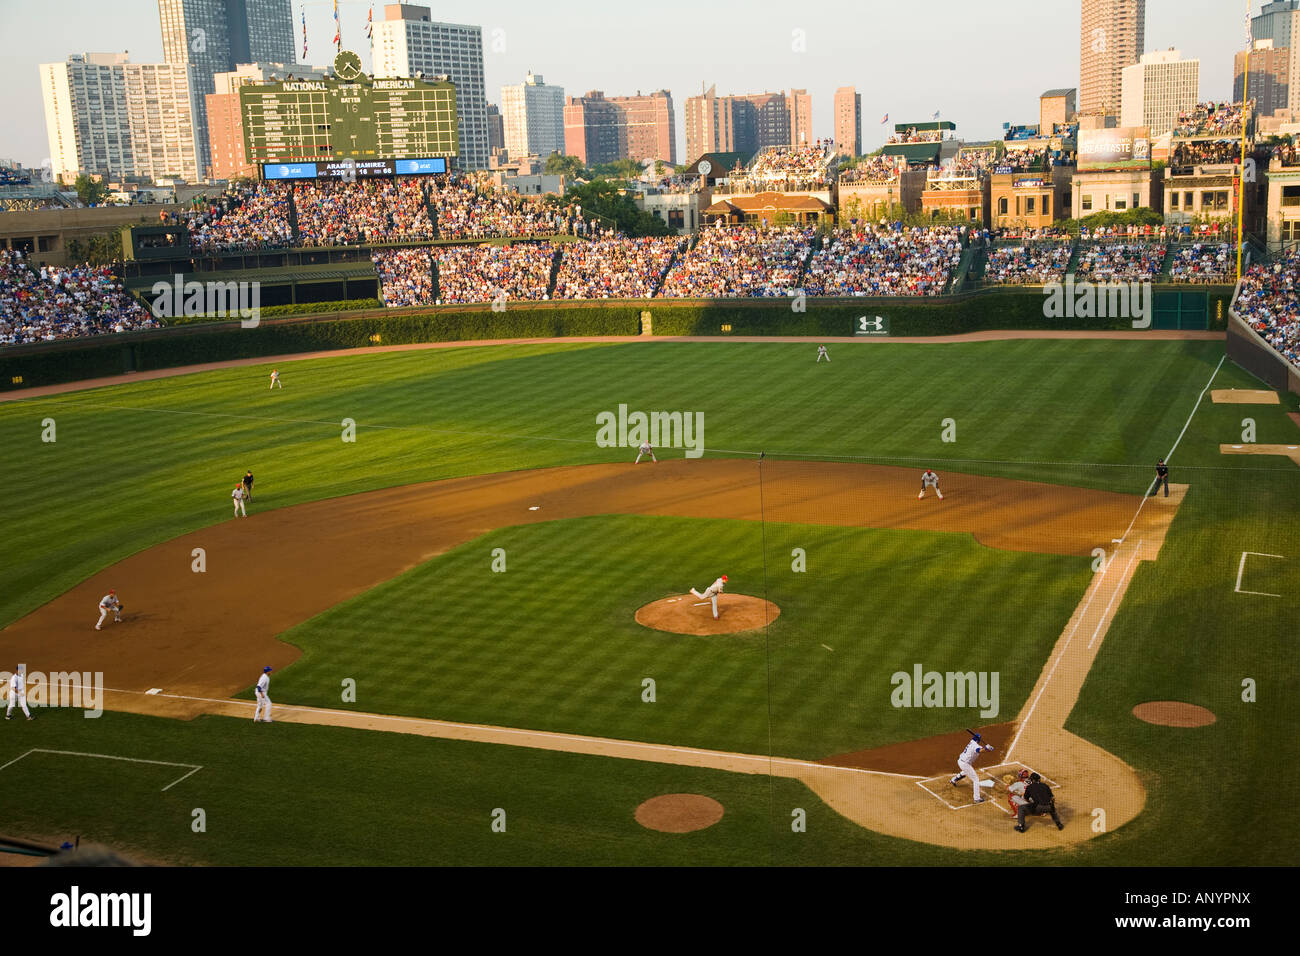 ILLINOIS Chicago Crowd in stands Wrigley Field watching night game stadium Chicago Cubs baseball team bleachers - Stock Image